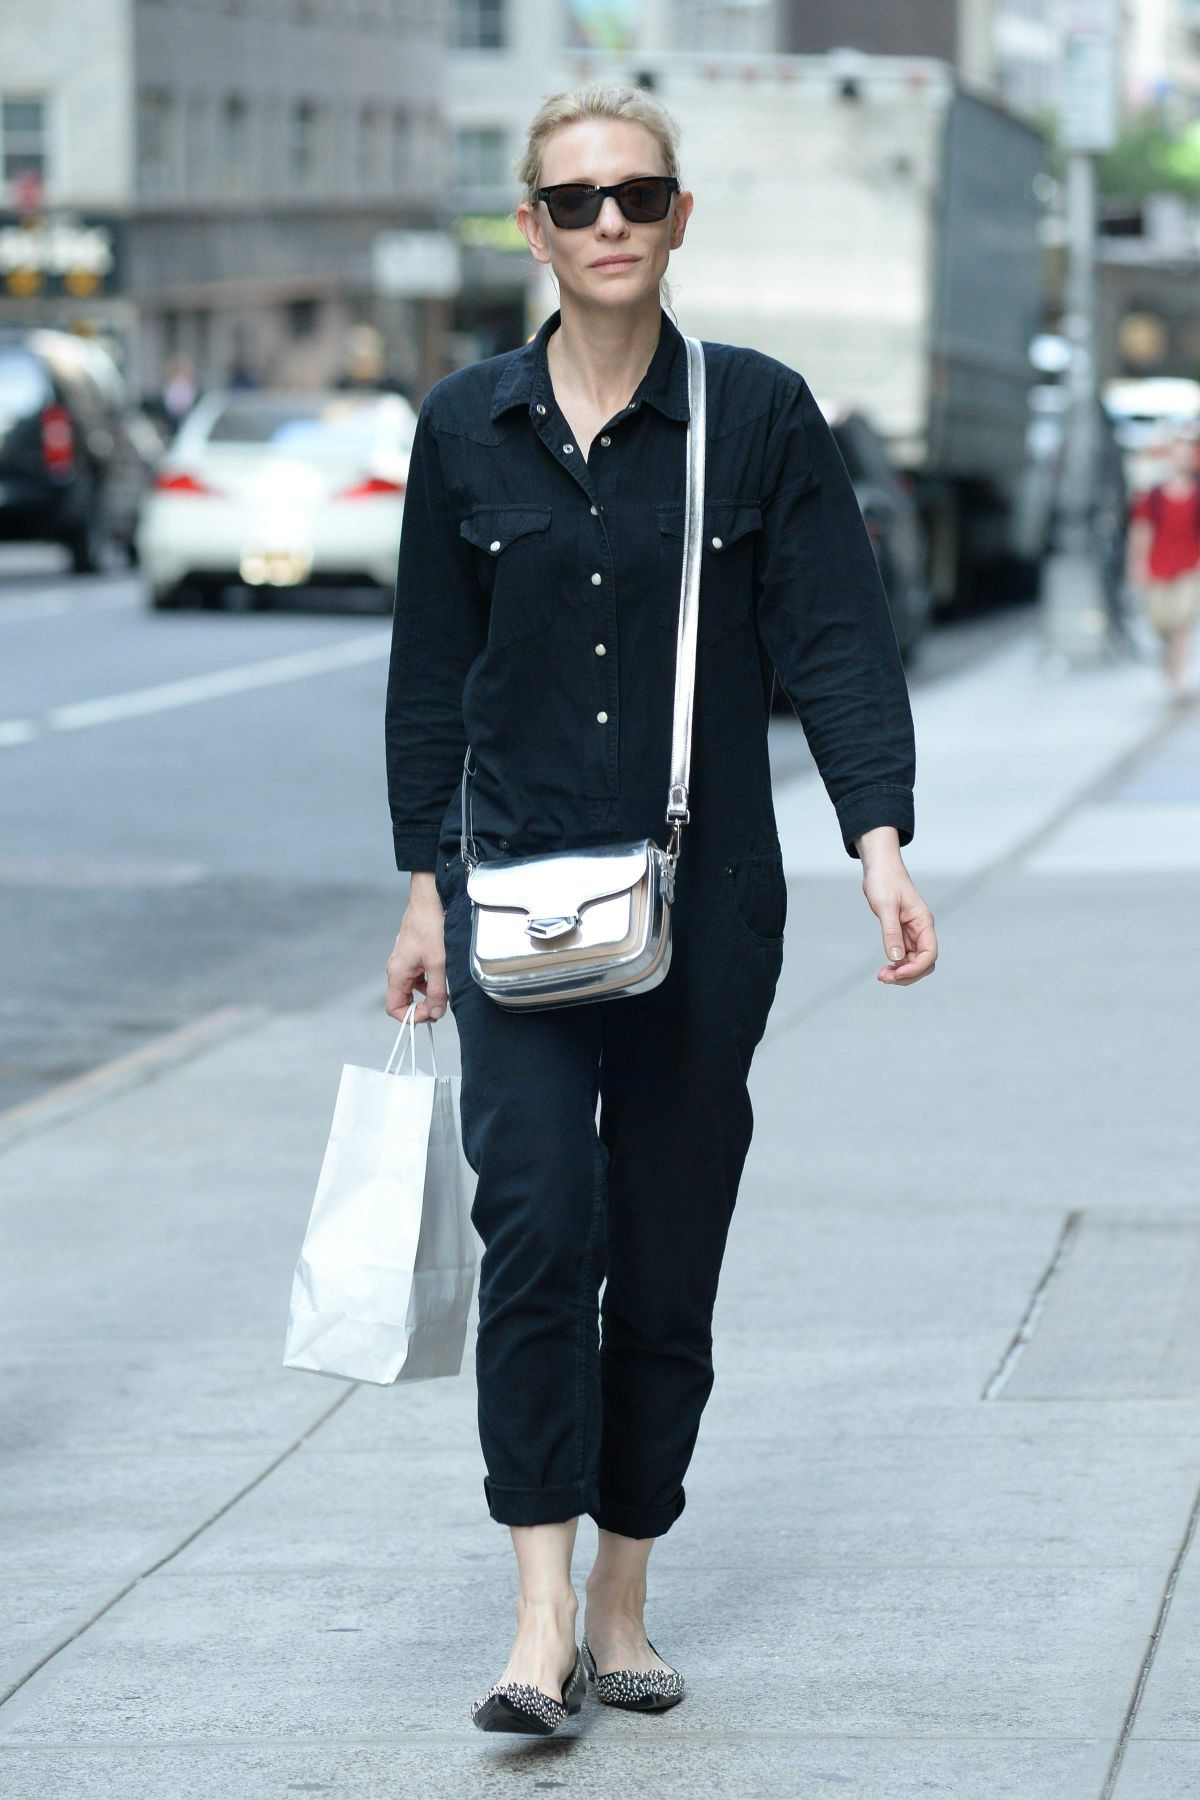 Cate Blanchett Out And About In Midtown In New York City